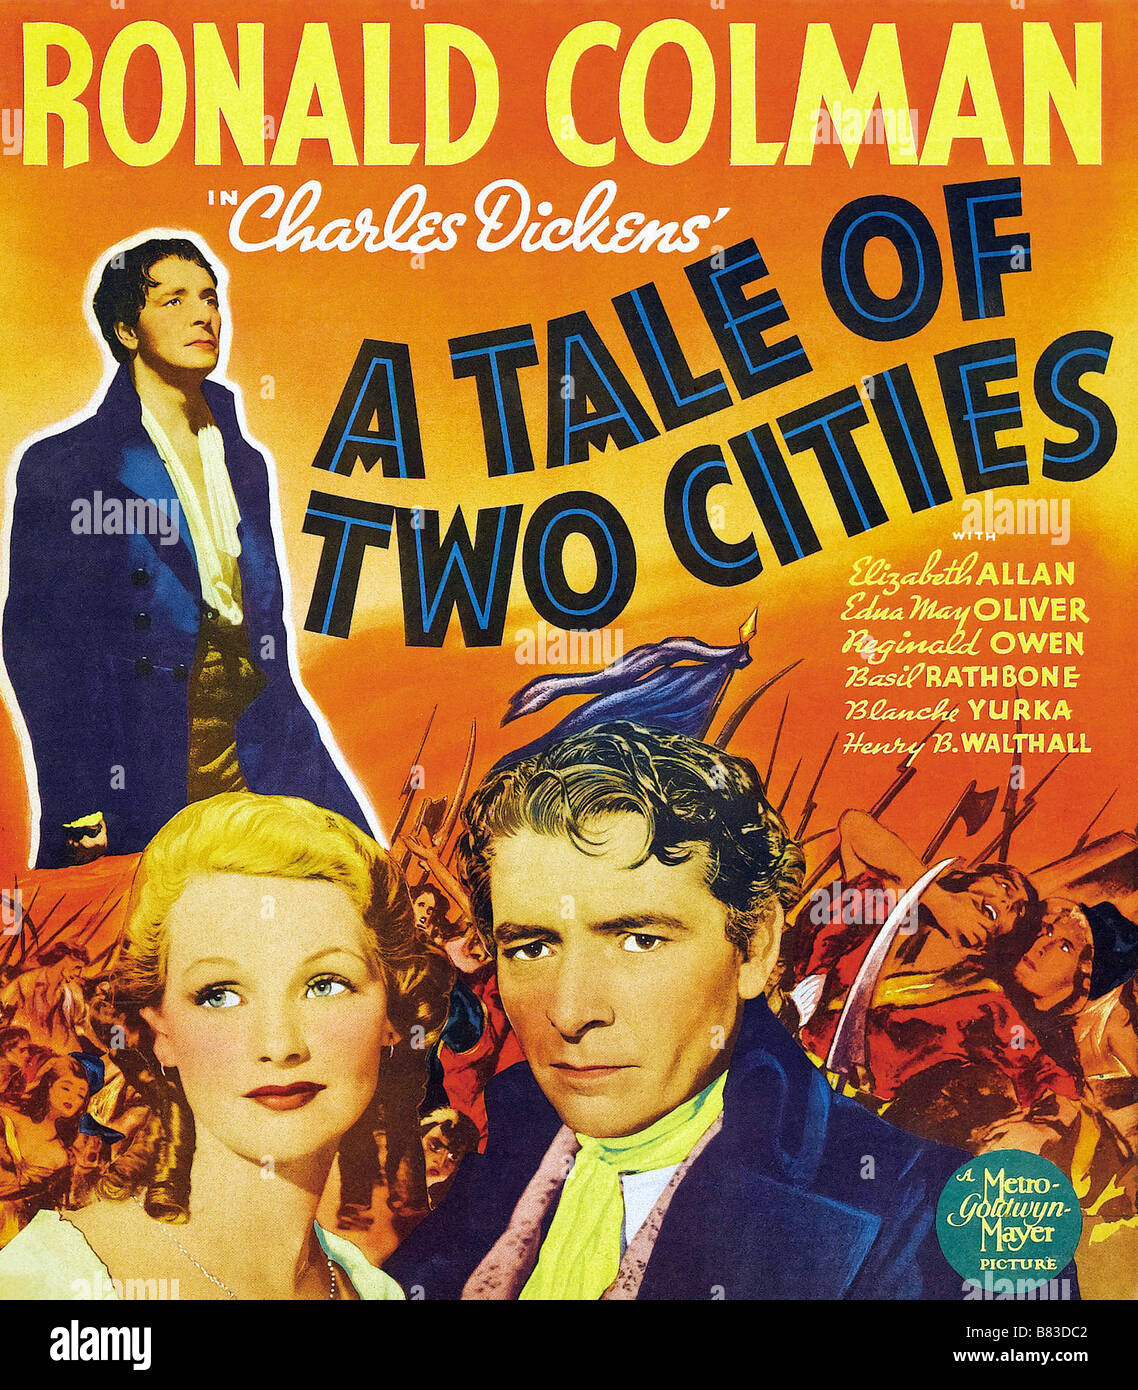 Allan as lucie manette colman had long wanted to play sydney car - Marquis De Saint Evremond Le A Tale Of Two Cities 1935 Usa Ronald Colman Affiche Poster